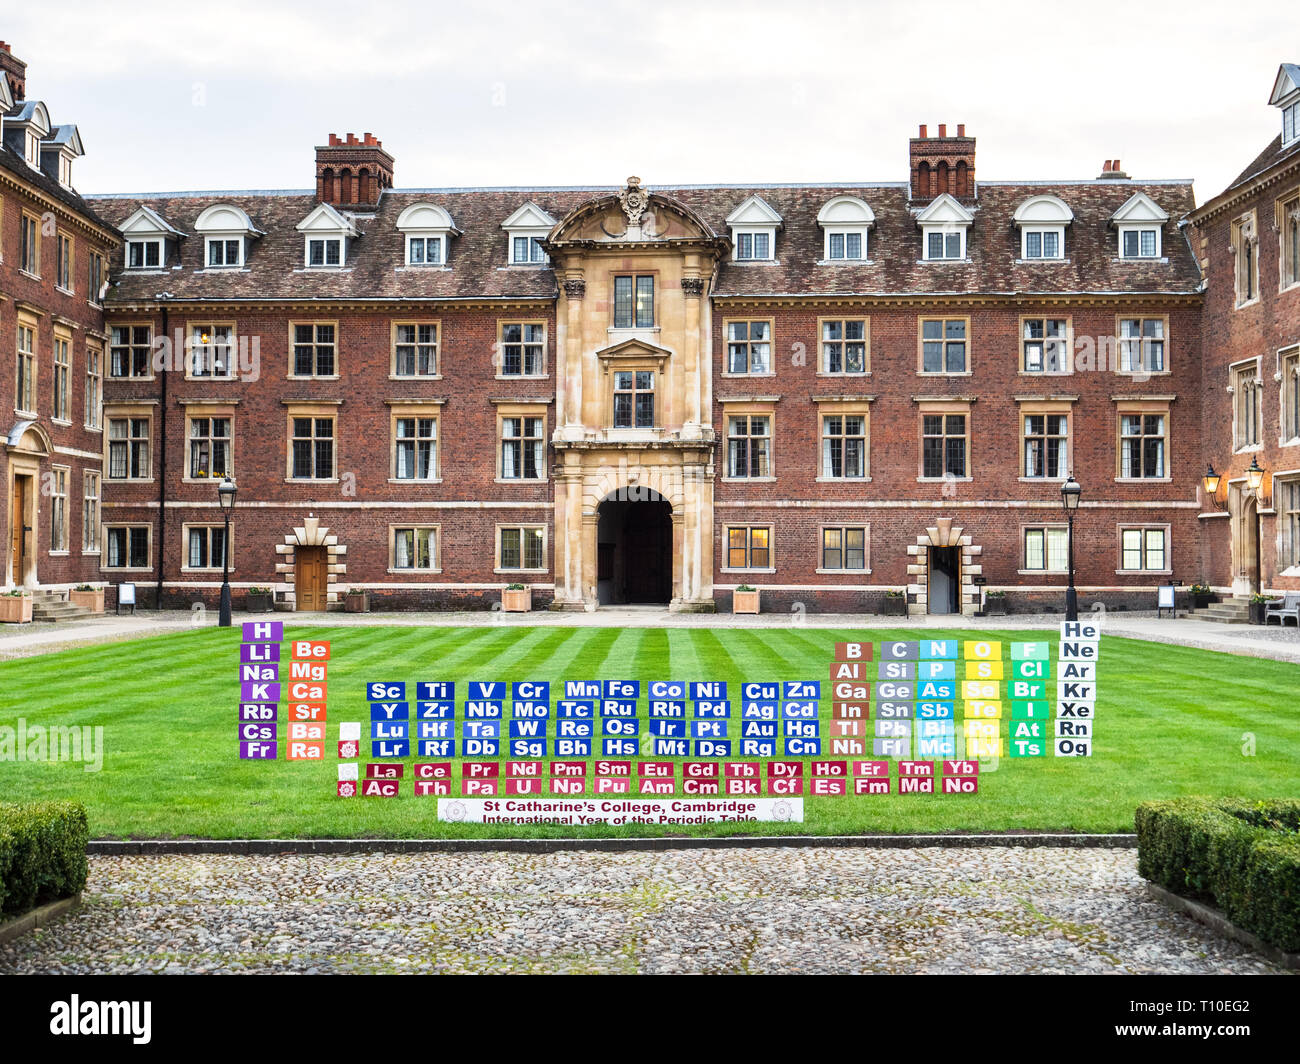 Enjoyable International Year Of The Periodic Table Exhibition St Download Free Architecture Designs Intelgarnamadebymaigaardcom